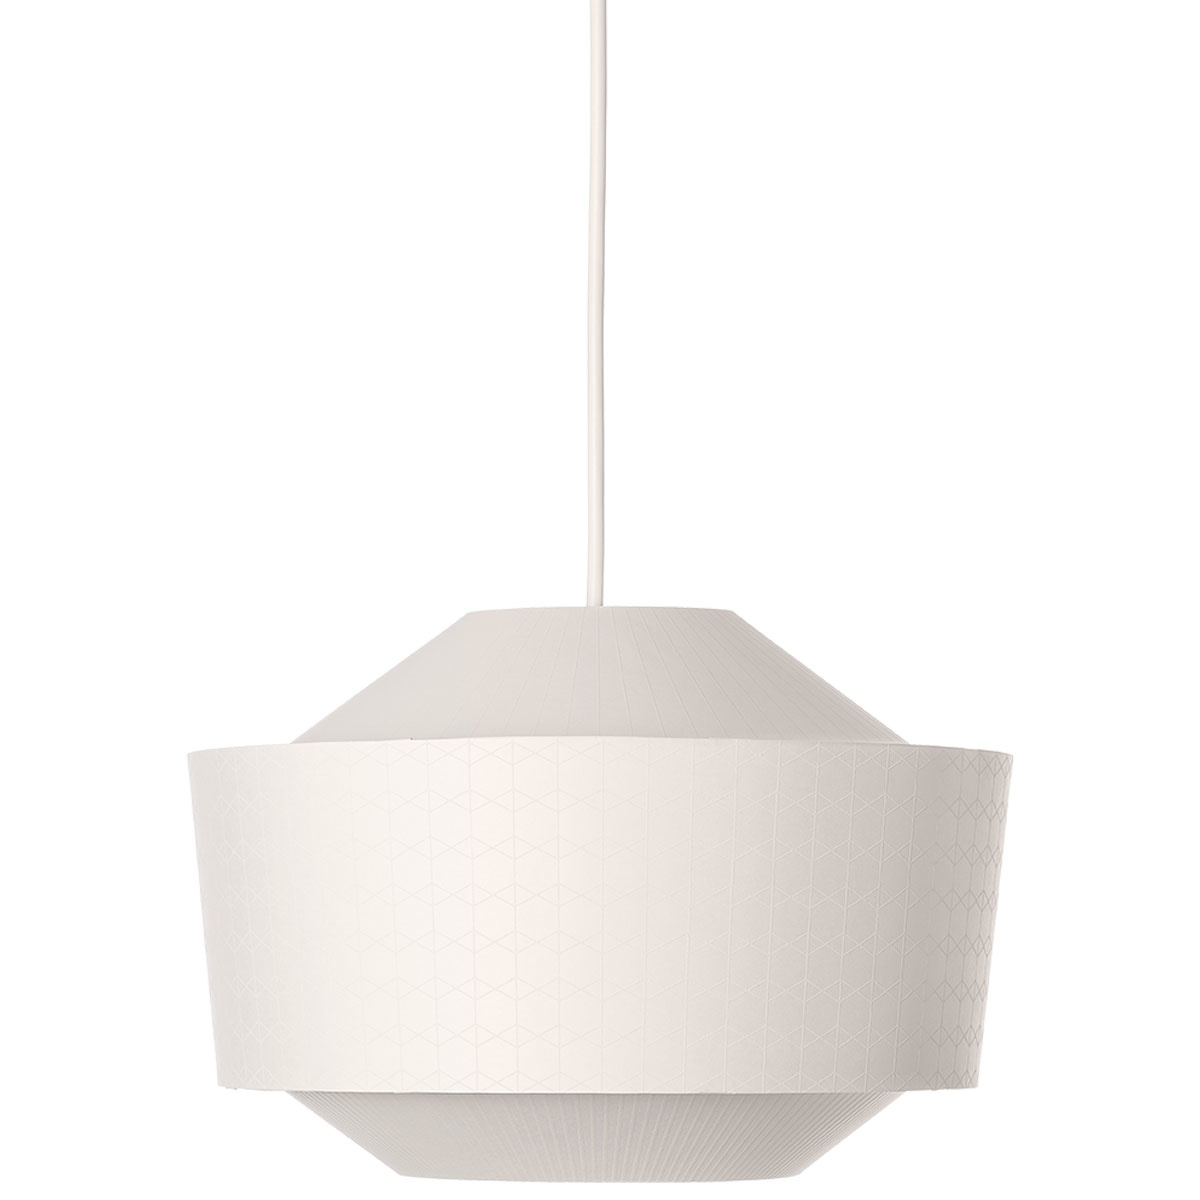 Loena Lantern Wide from Ontwerpduo